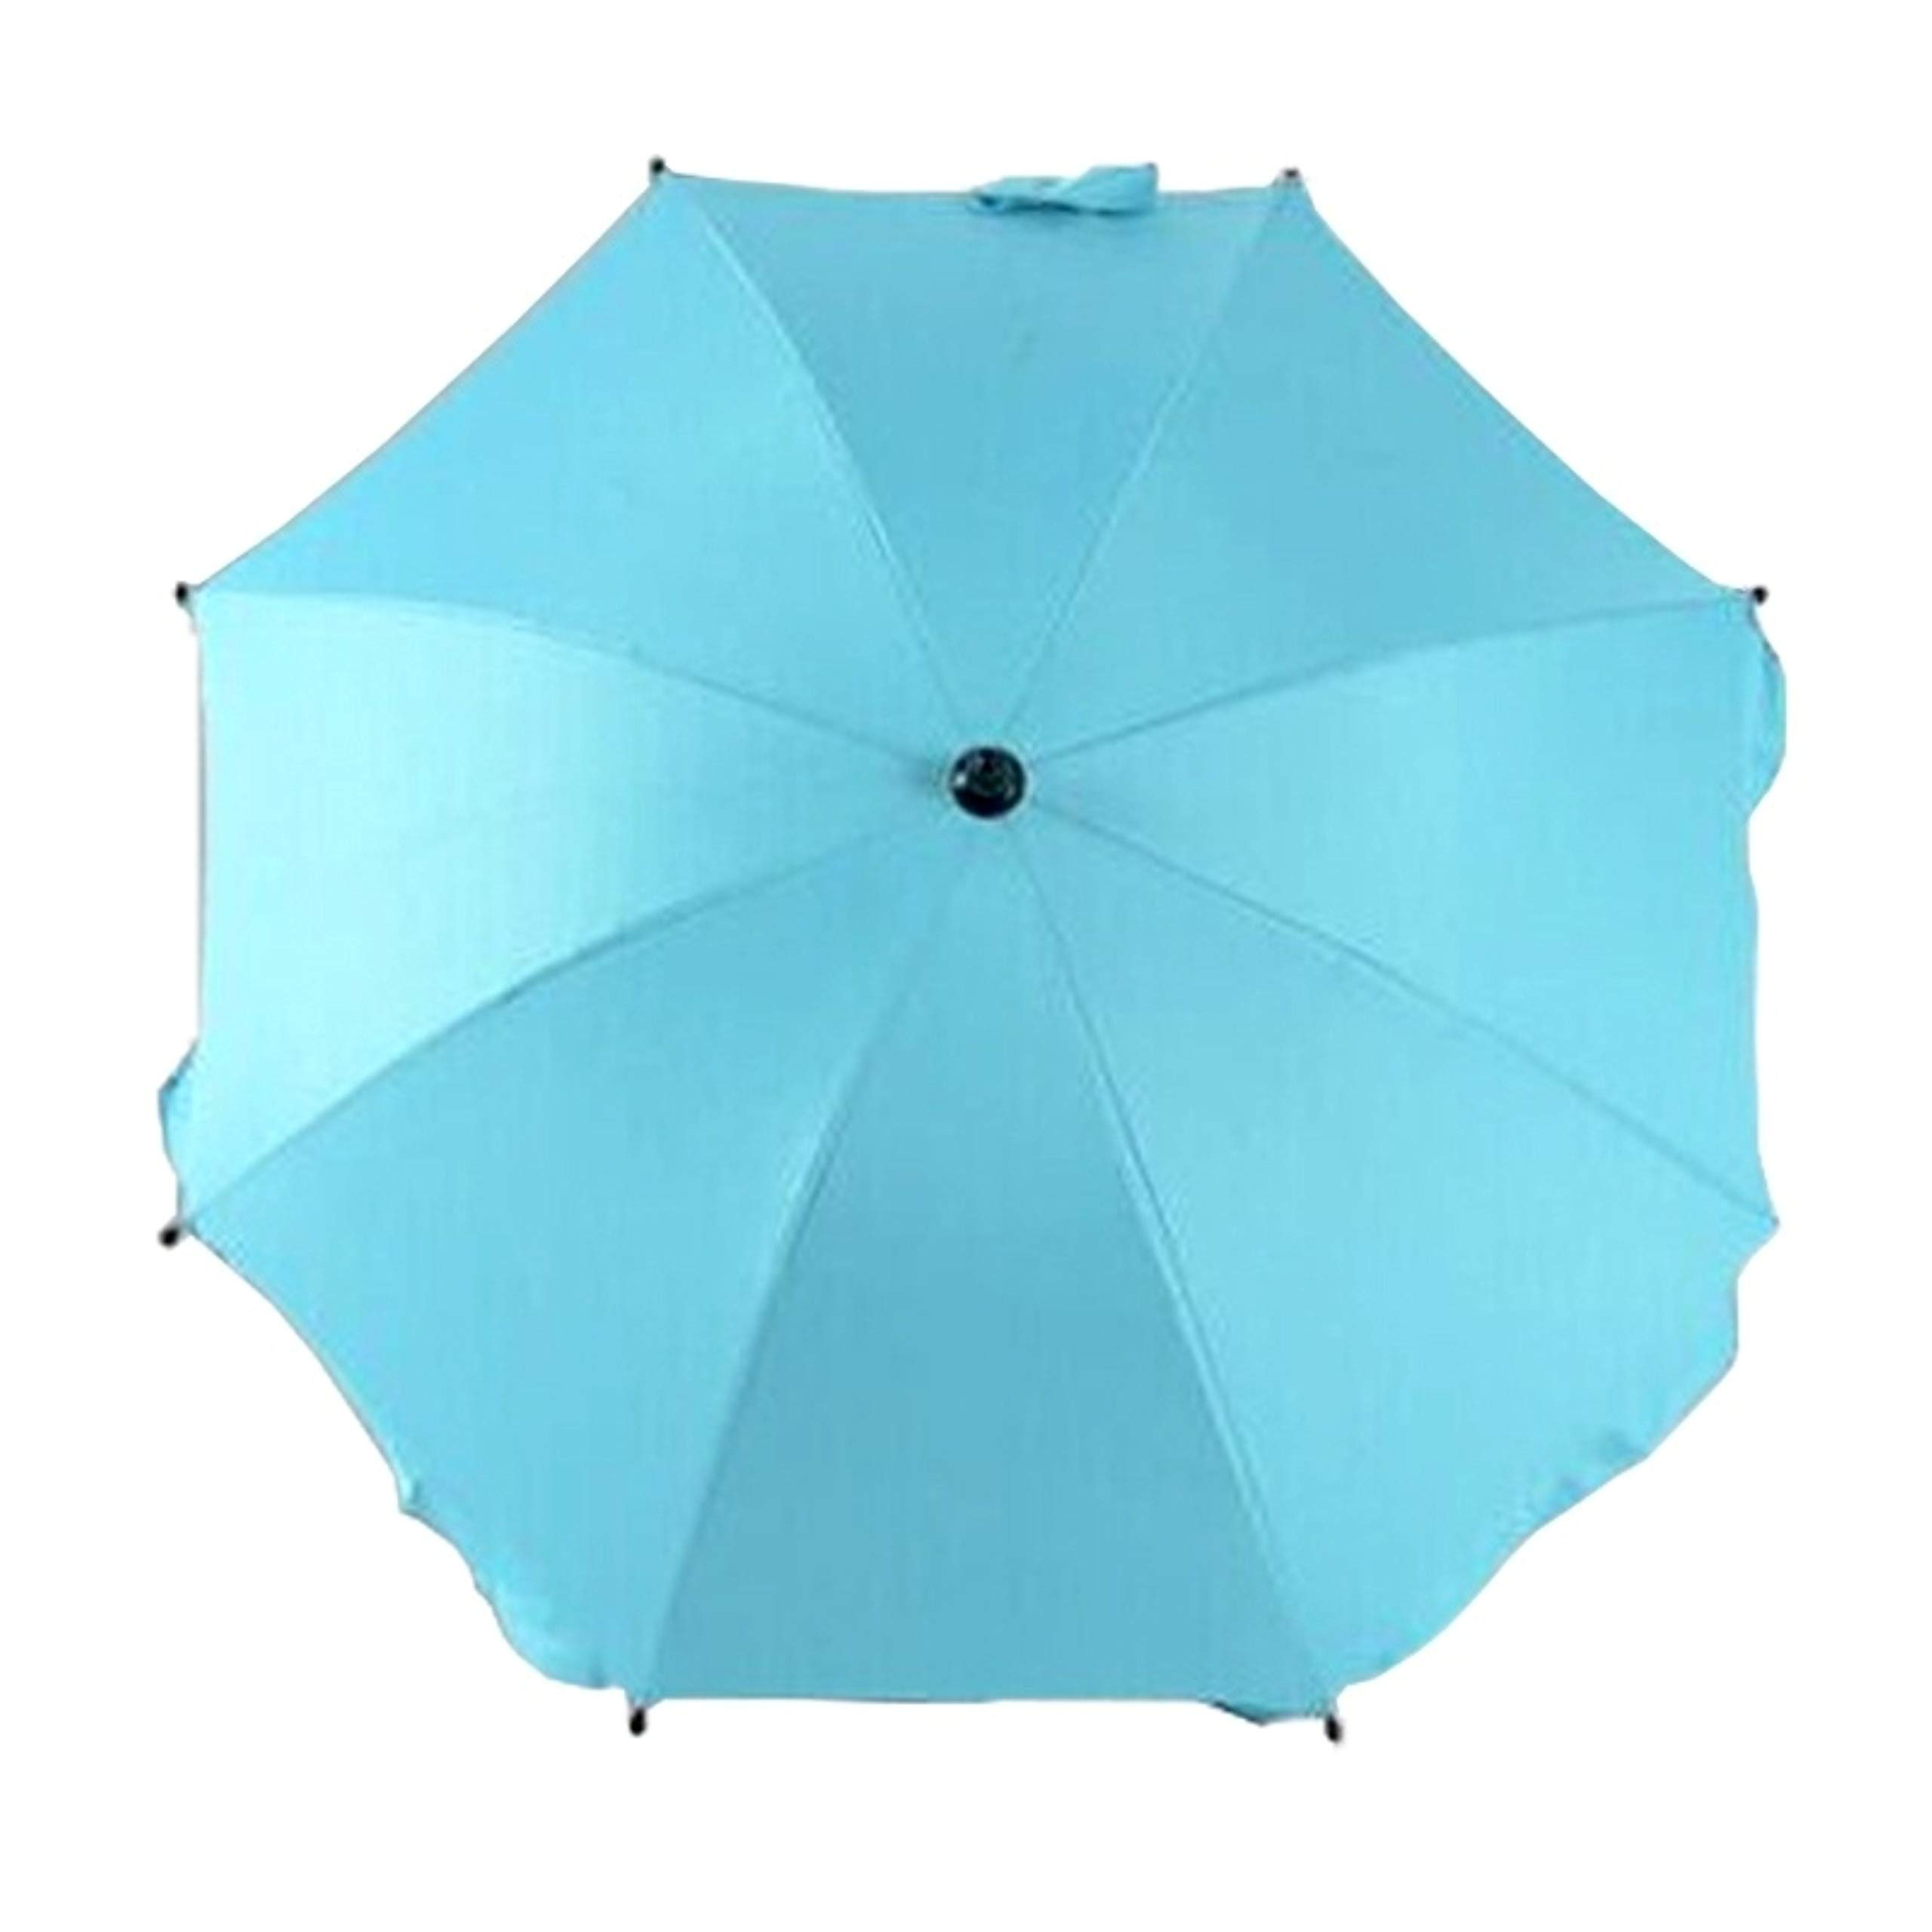 Adjustable Umbrella for Golf Carts, Baby Strollers/Prams and Wheelchairs to Provide Protection from Rain and The Sun(Azure)